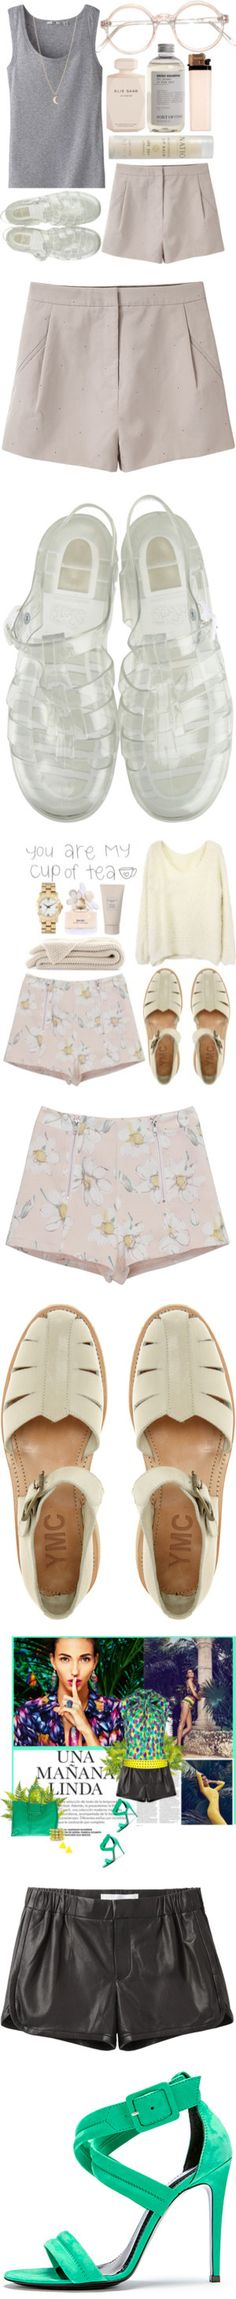 """Thinking Ahead: Shorts and Sandals"" by polyvore-editorial on Polyvore"